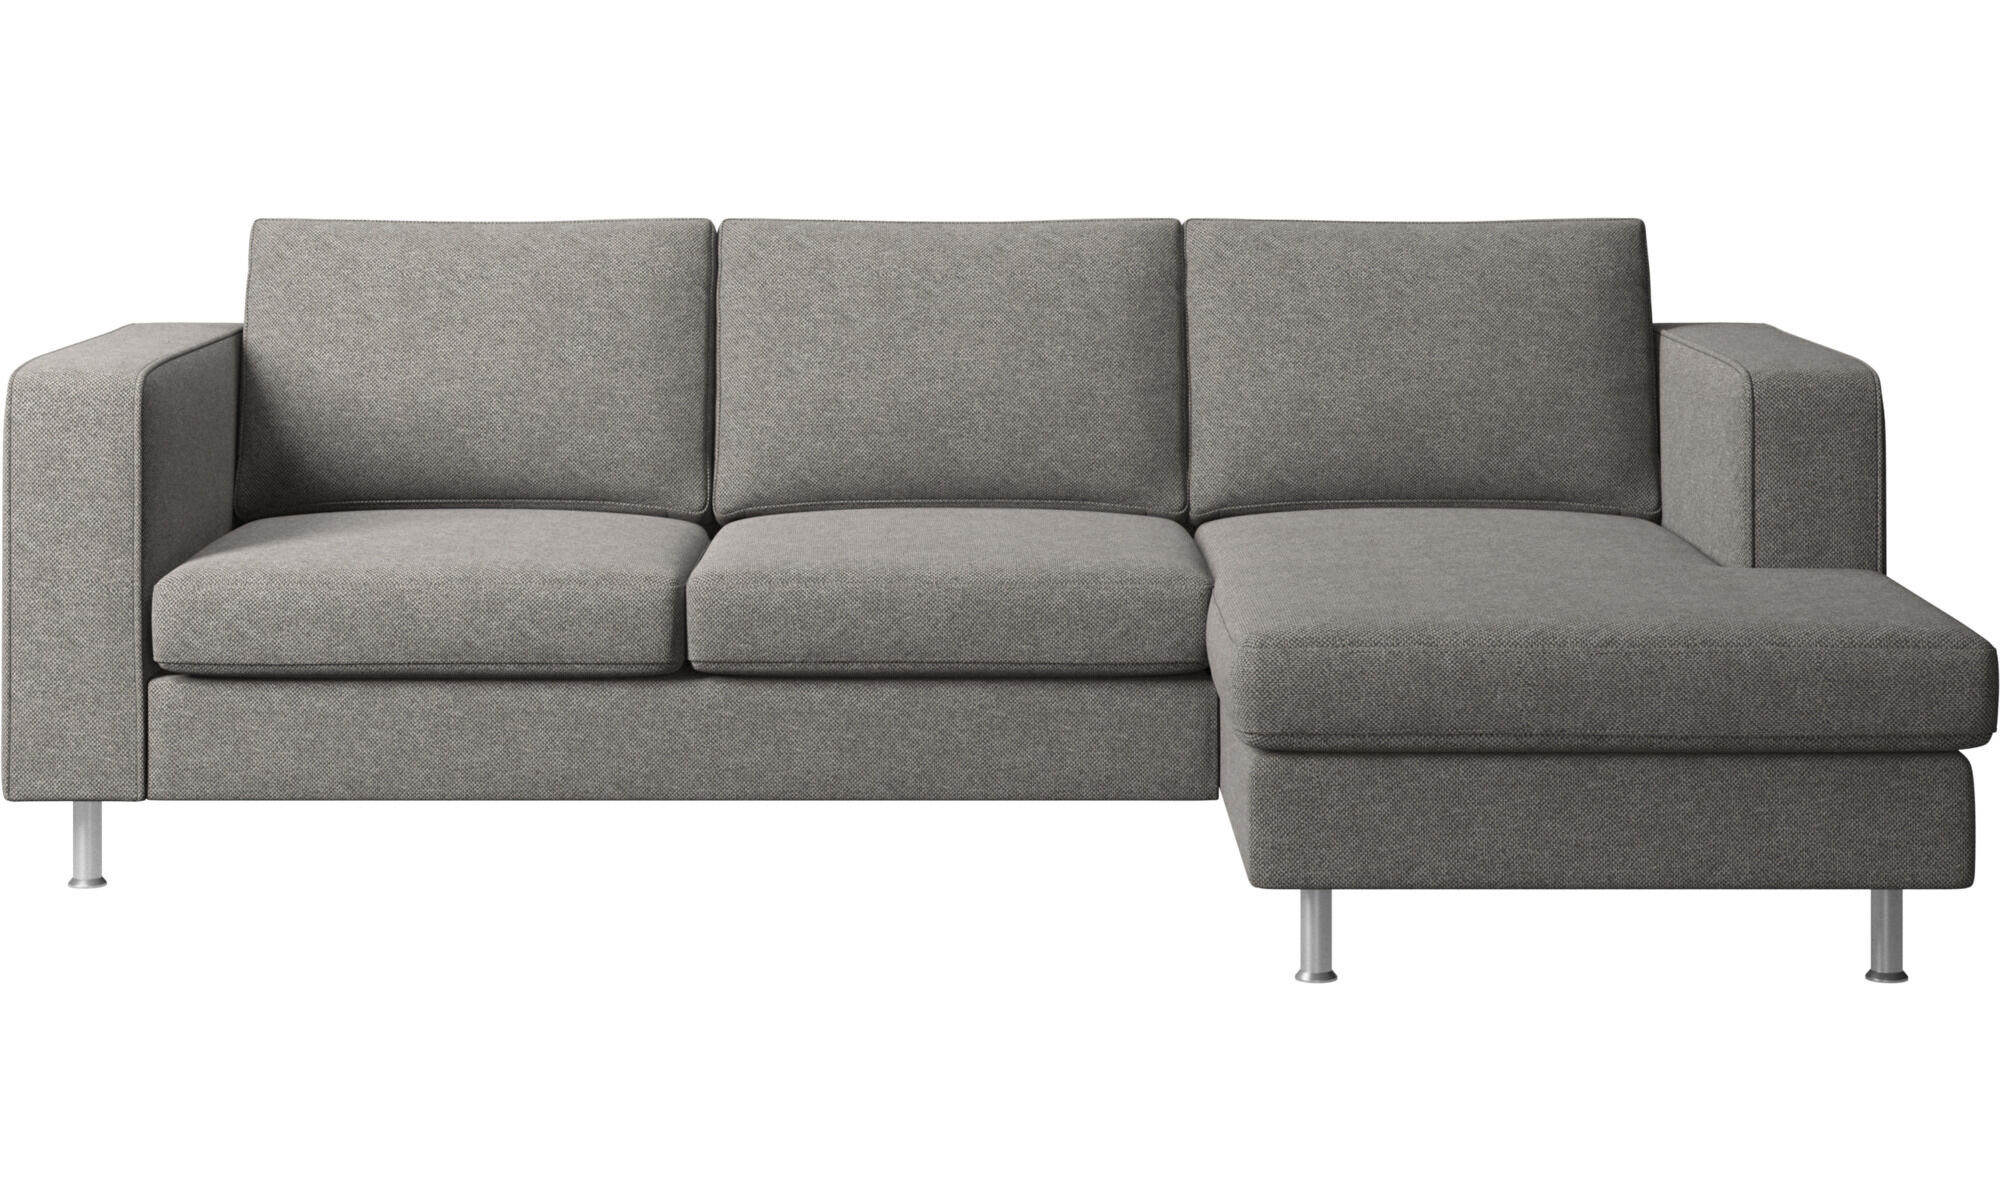 modern chaise longue sofas quality from boconcept rh boconcept com chase lounges outside chase lounges outside cushions